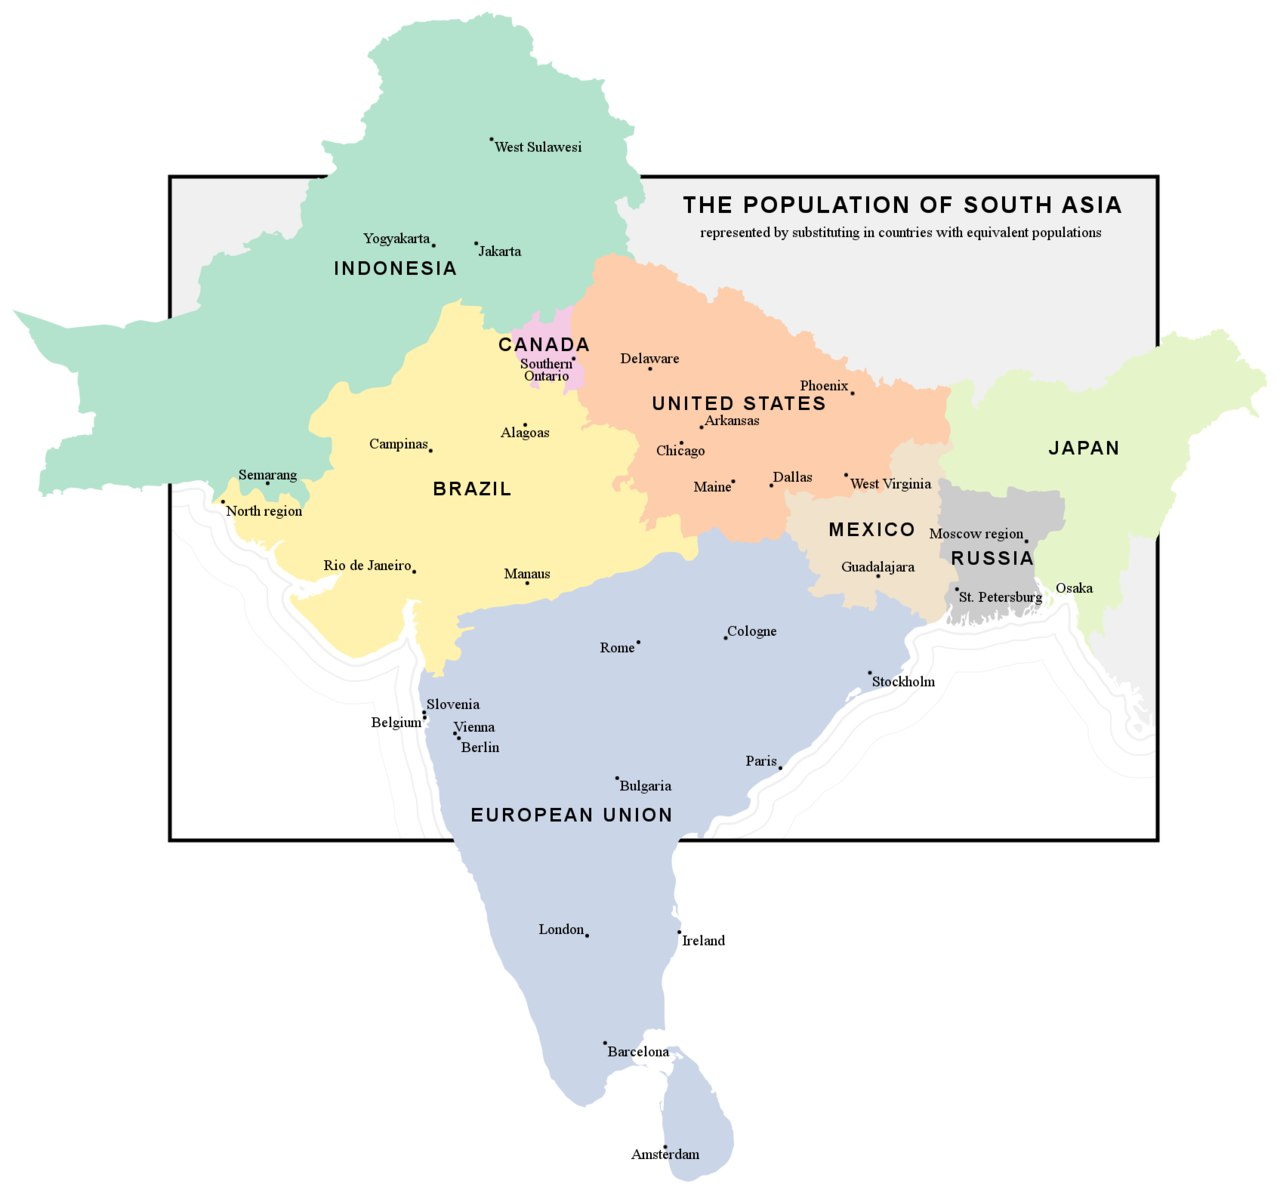 Population of South Asia